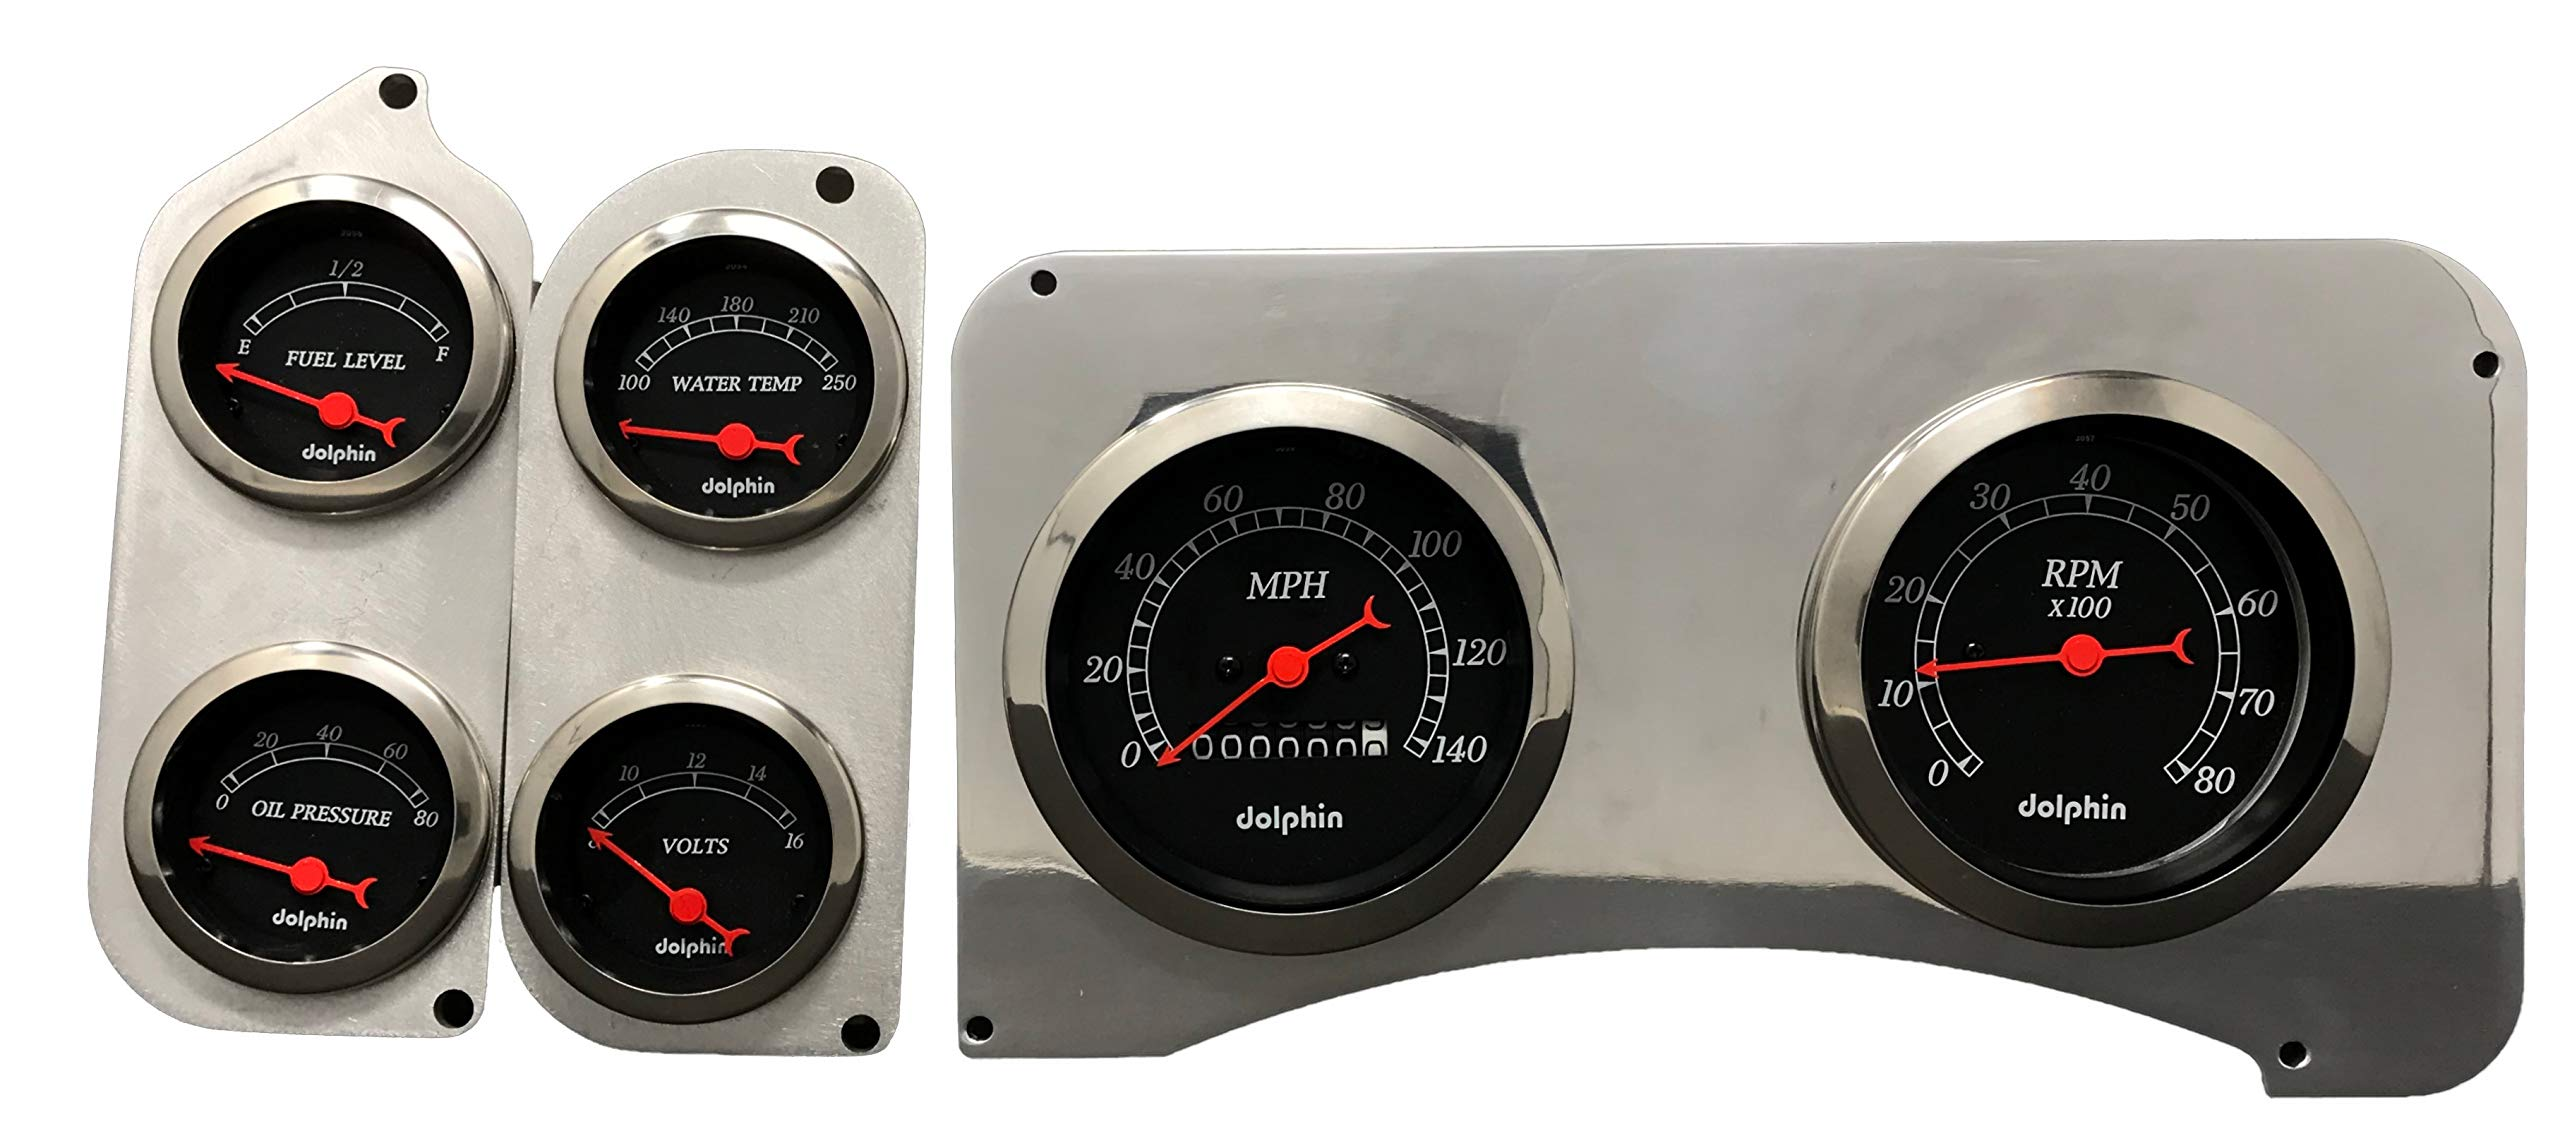 Dolphin Gauges 1973 1974 1975 1976 1977 1978 1979 1980 Chevy Truck 6 Gauge Dash Cluster Panel Set Mechanical Black by Dolphin Gauges